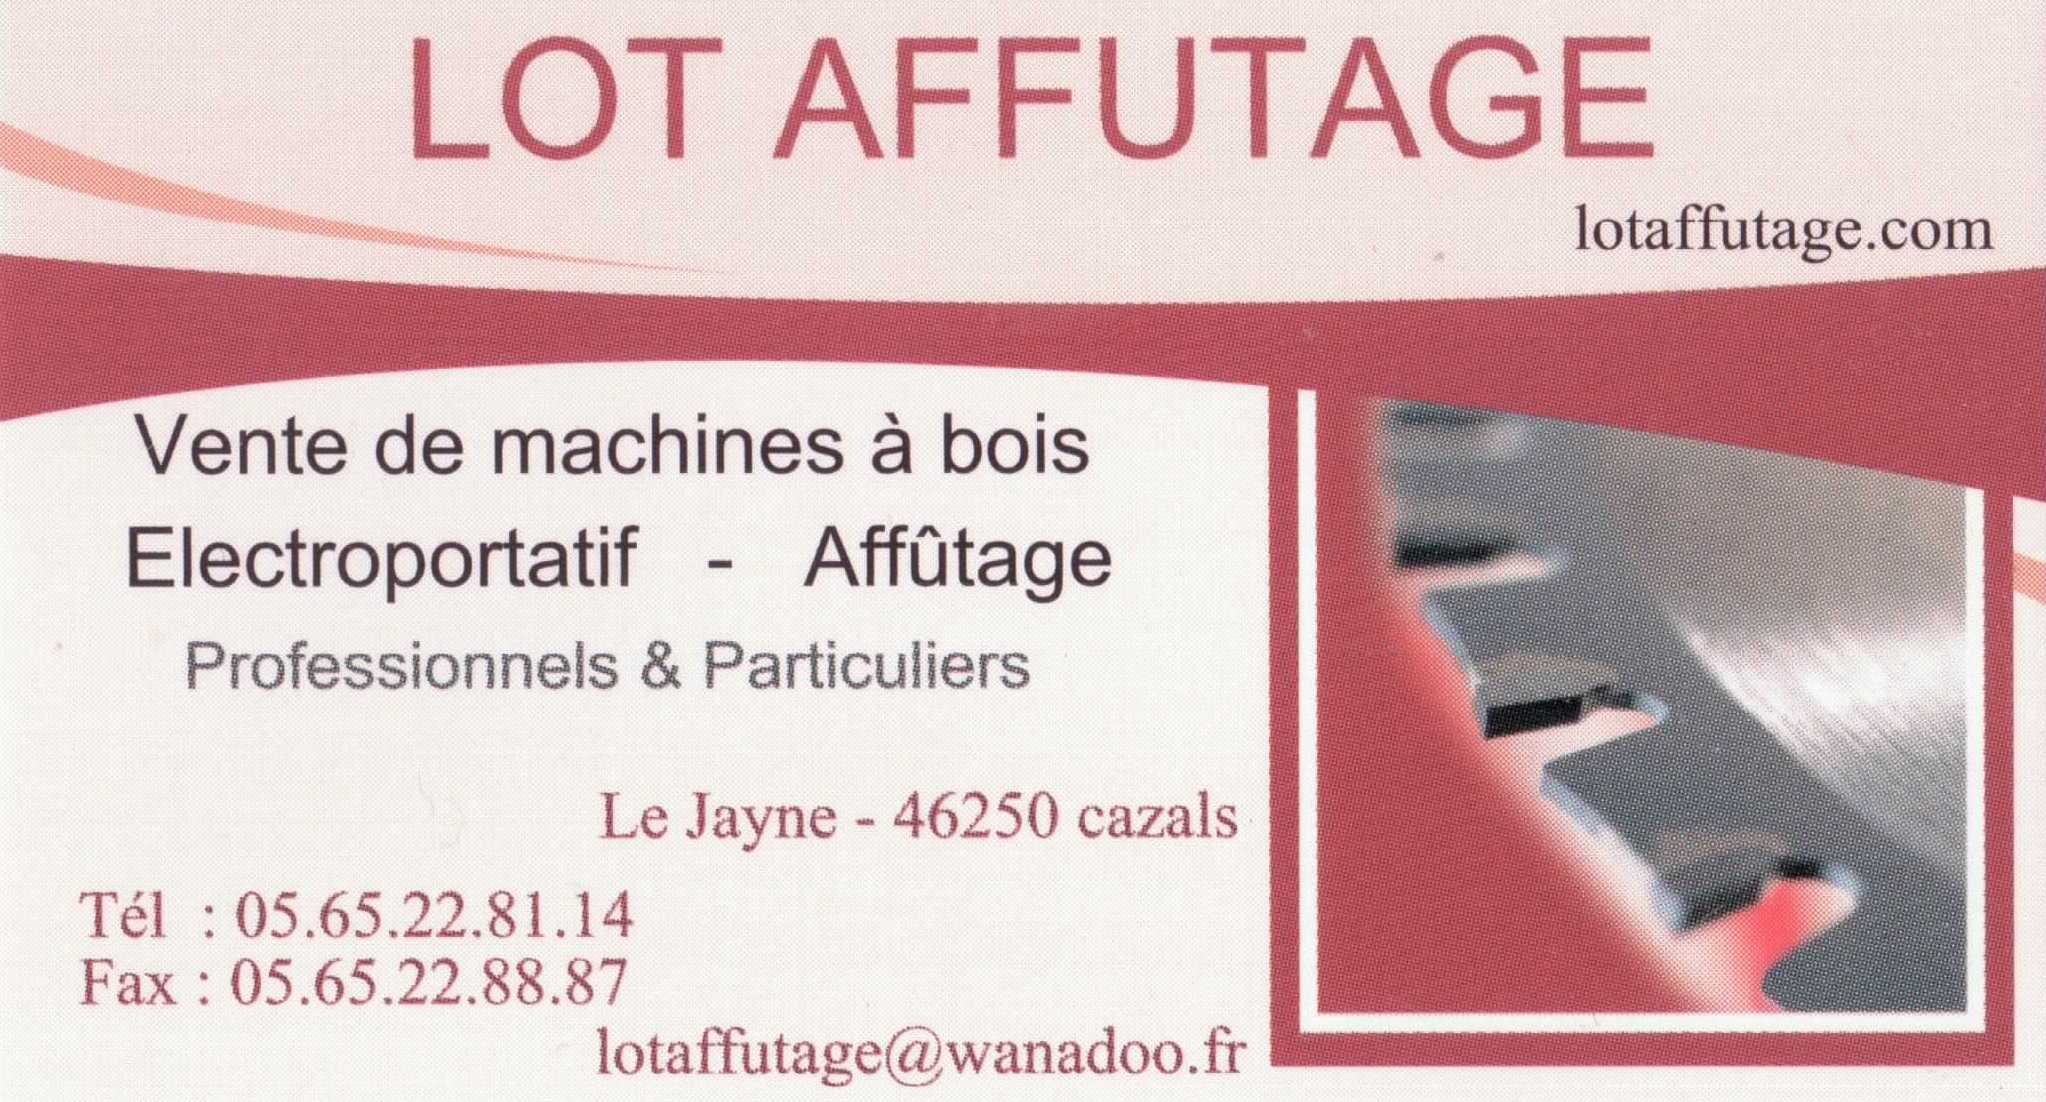 LOT - AFFUTAGE- CAZALS {JPEG}